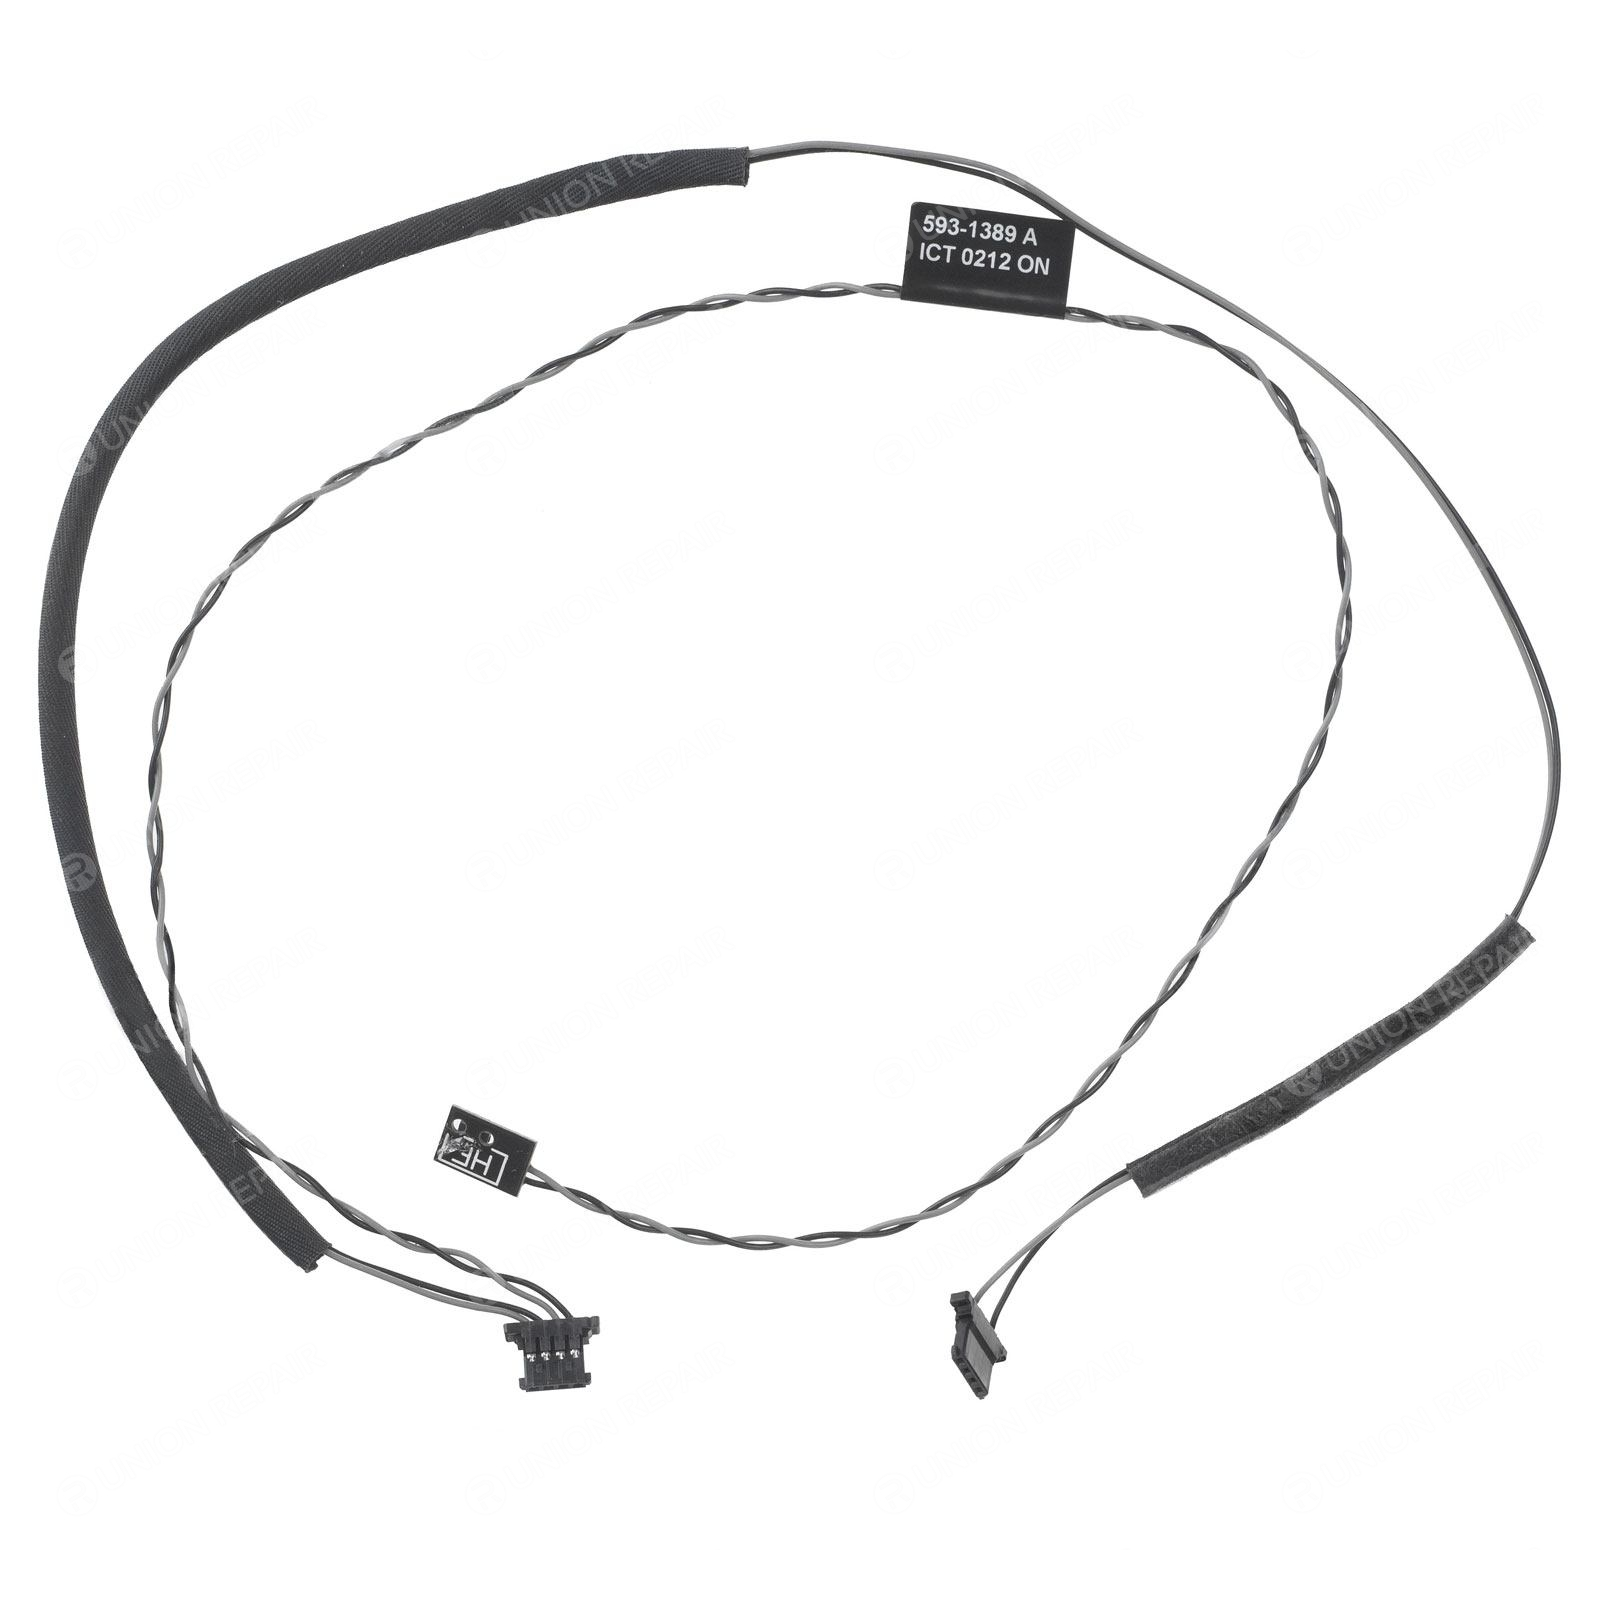 1600x1600 Lvds V Sync Temperature Cable For Imac